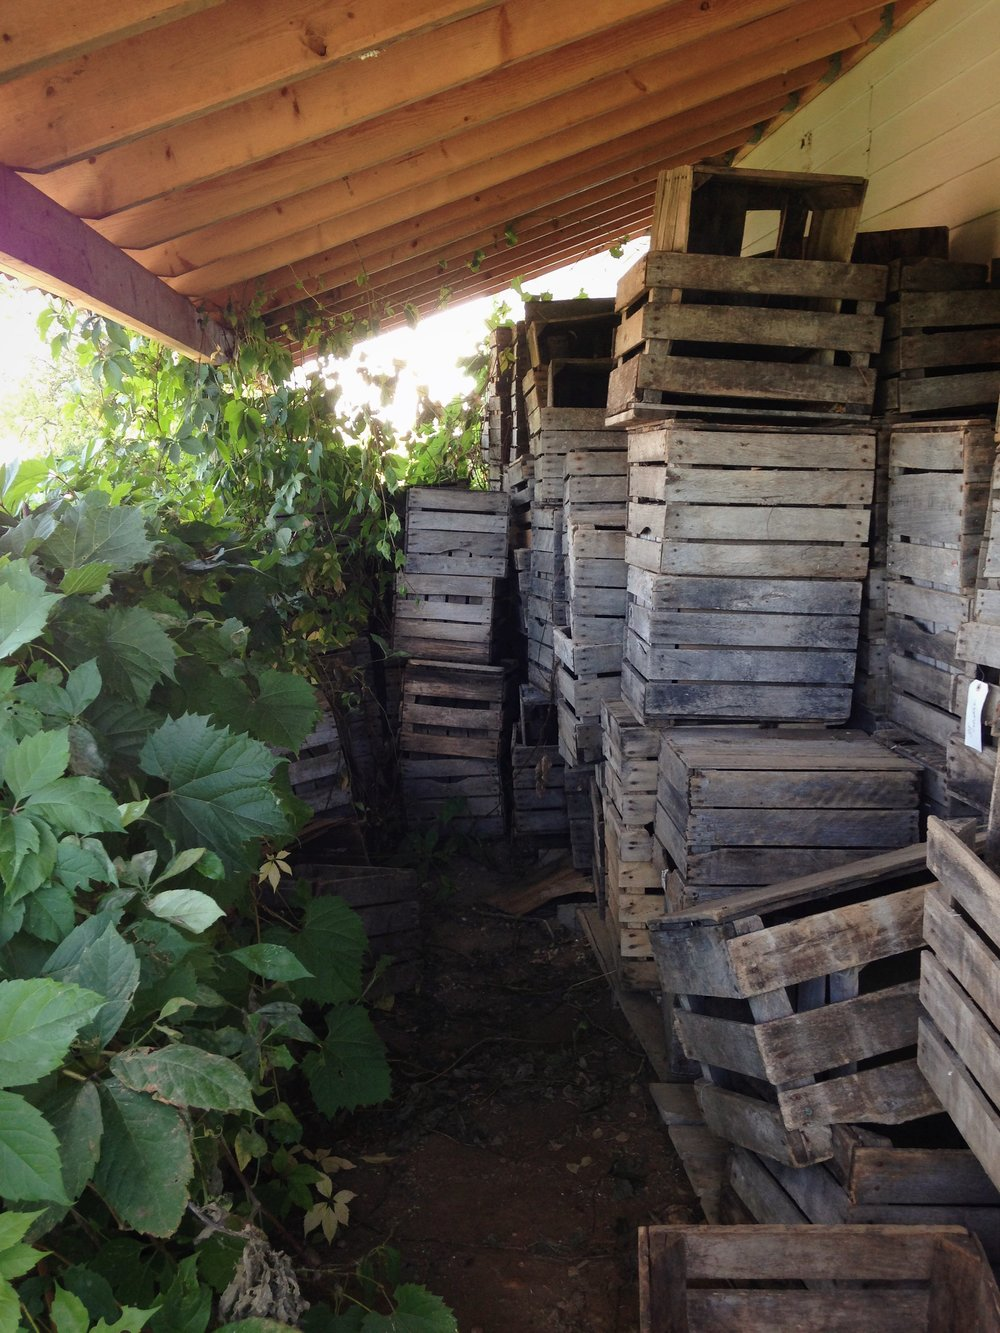 Weston's Antique Apple Orchard crates